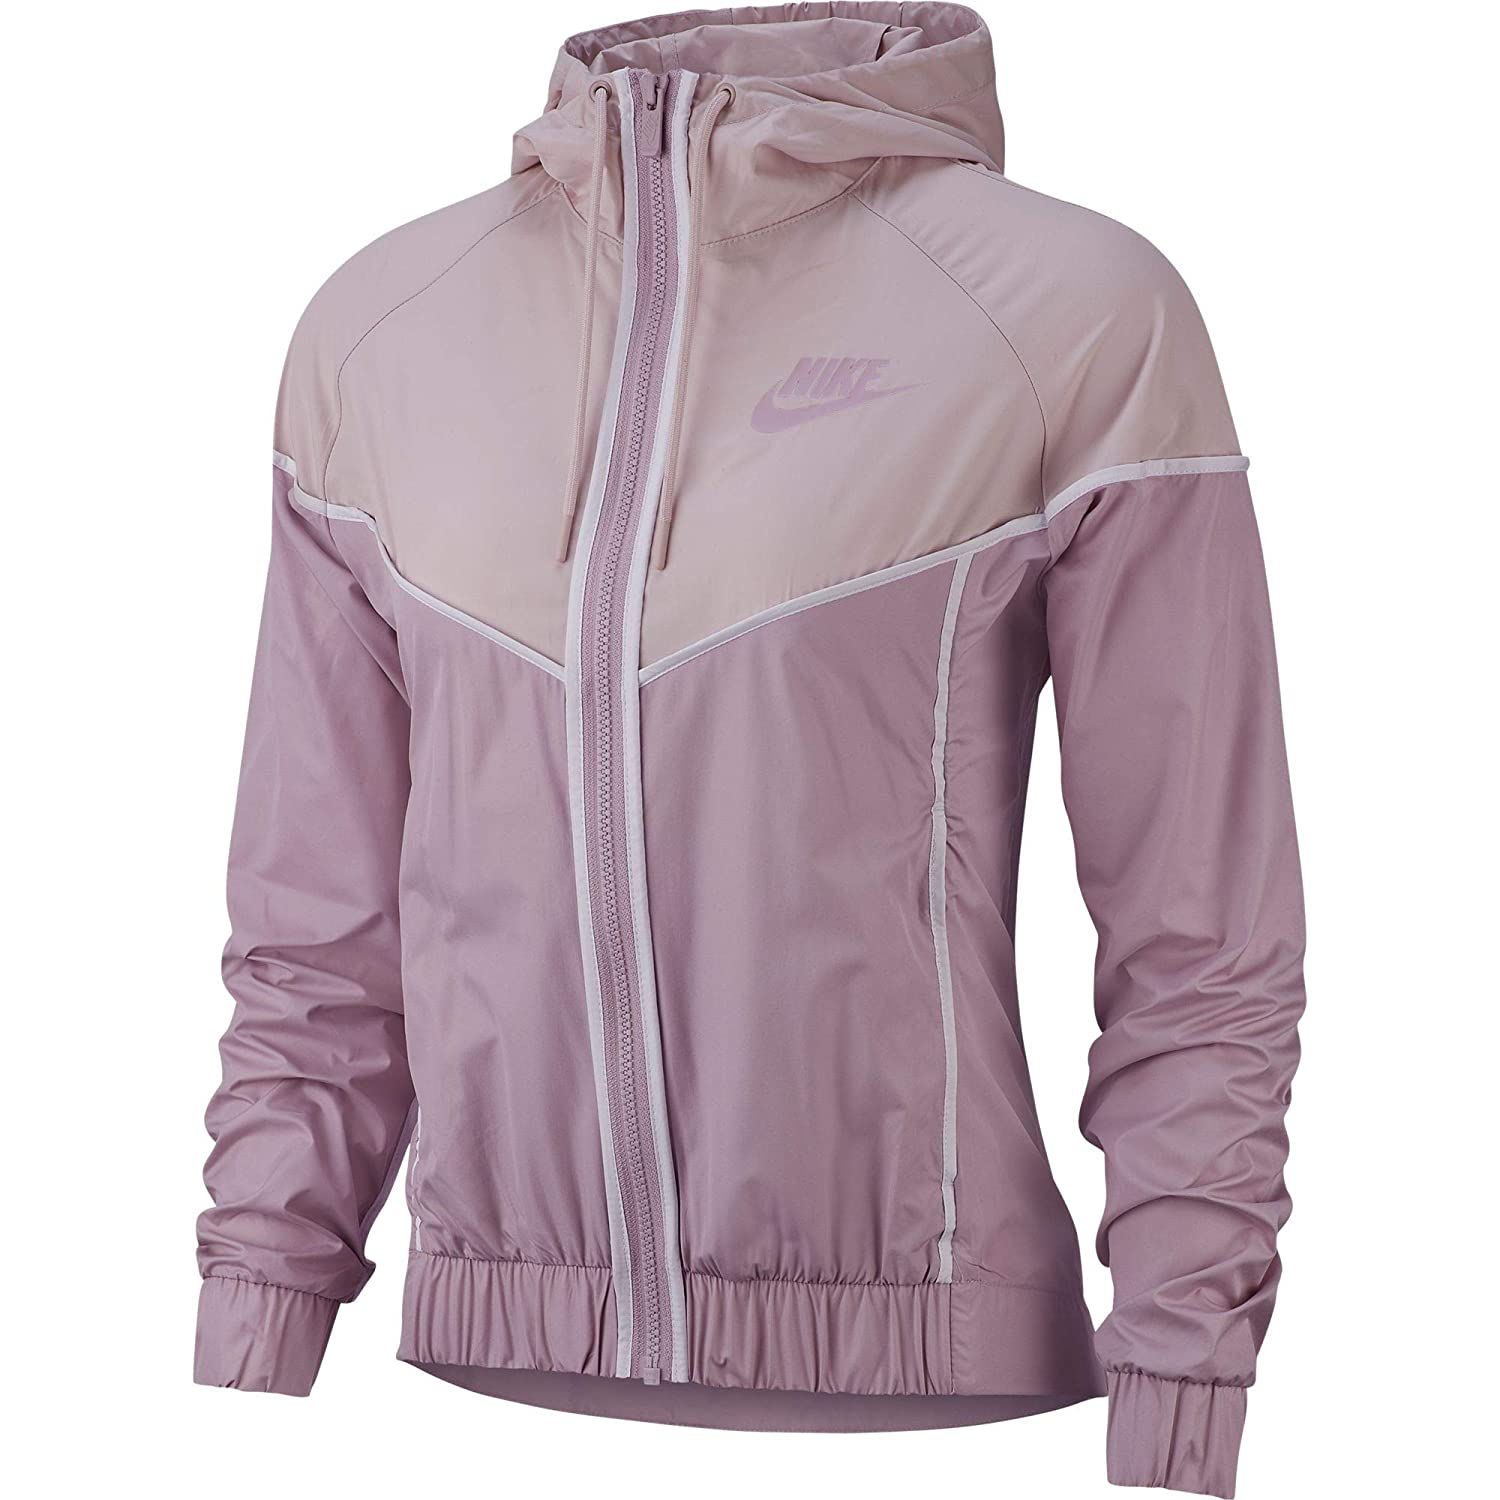 34fb41c22204 Amazon.com  Nike Women s Woven Windrunner Full Zip Windbreaker